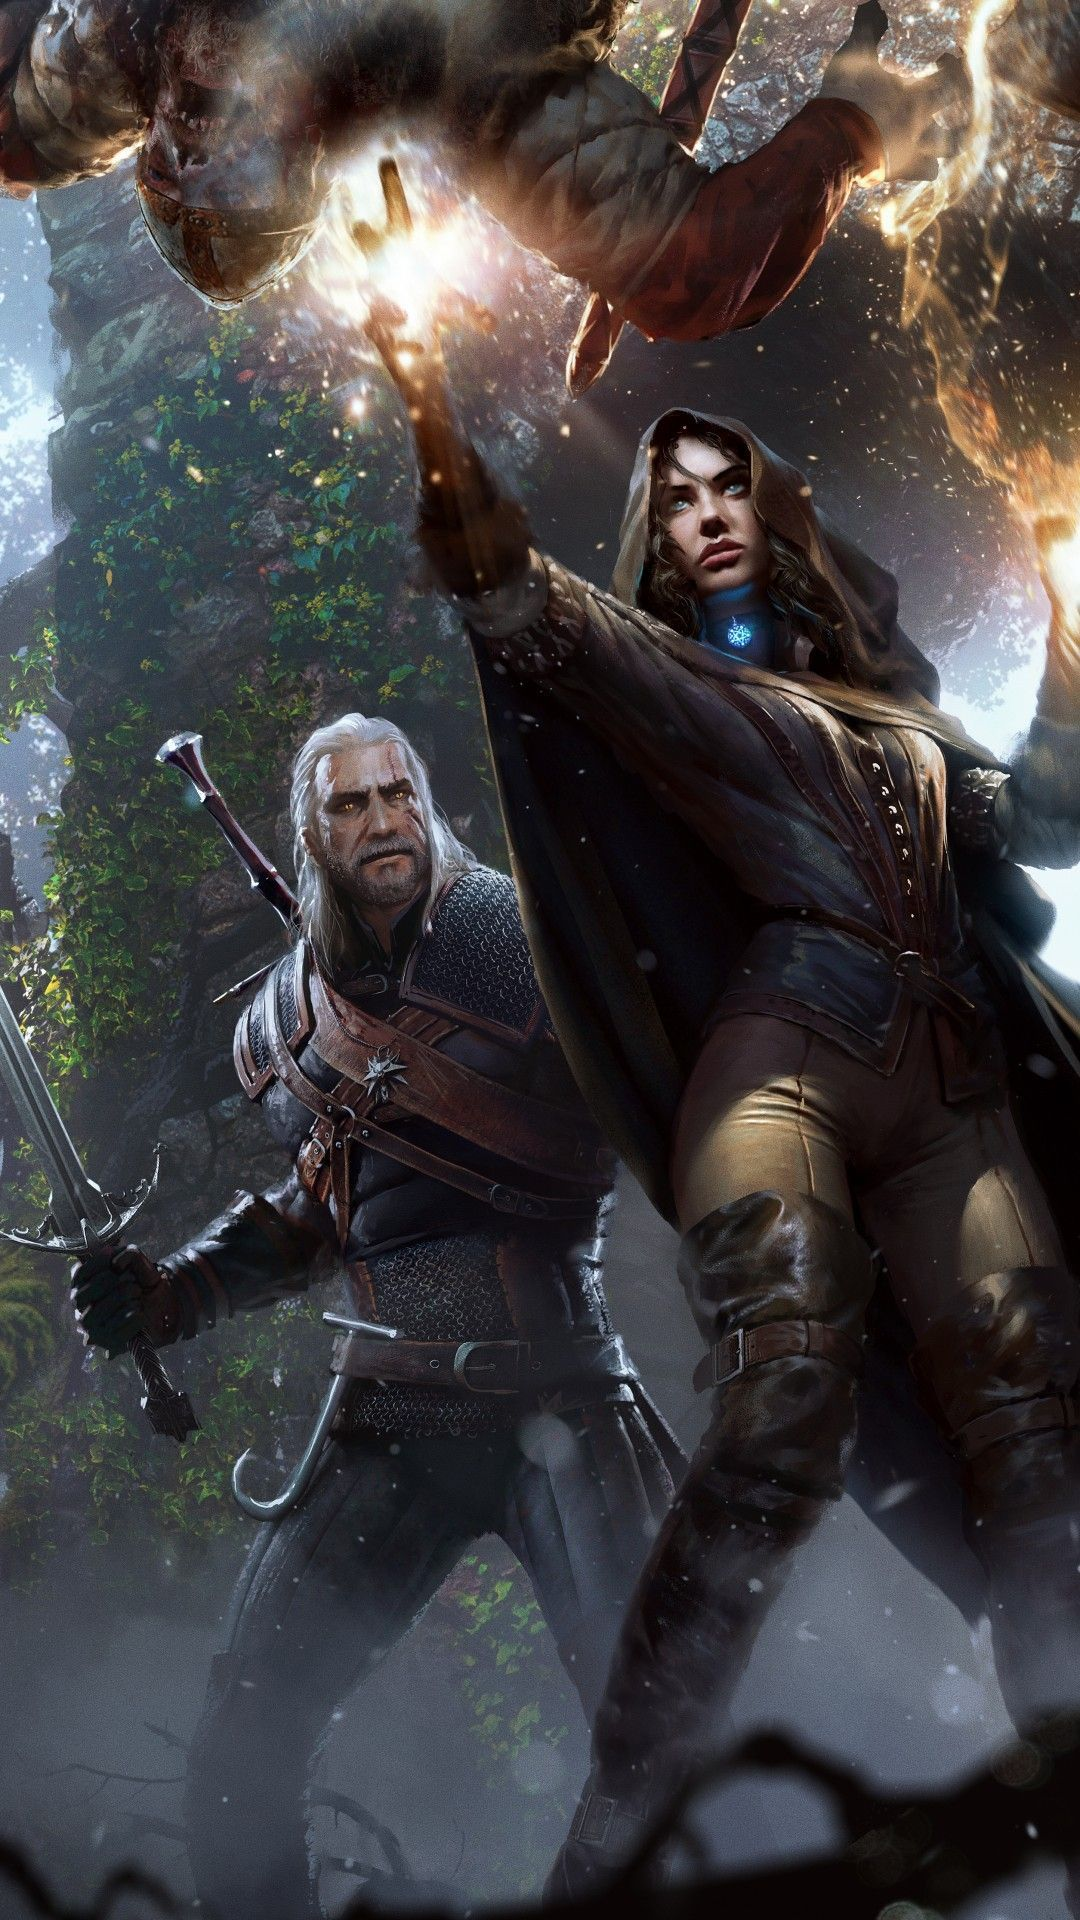 The Witcher 3 Android Wallpapers - Wallpaper Cave